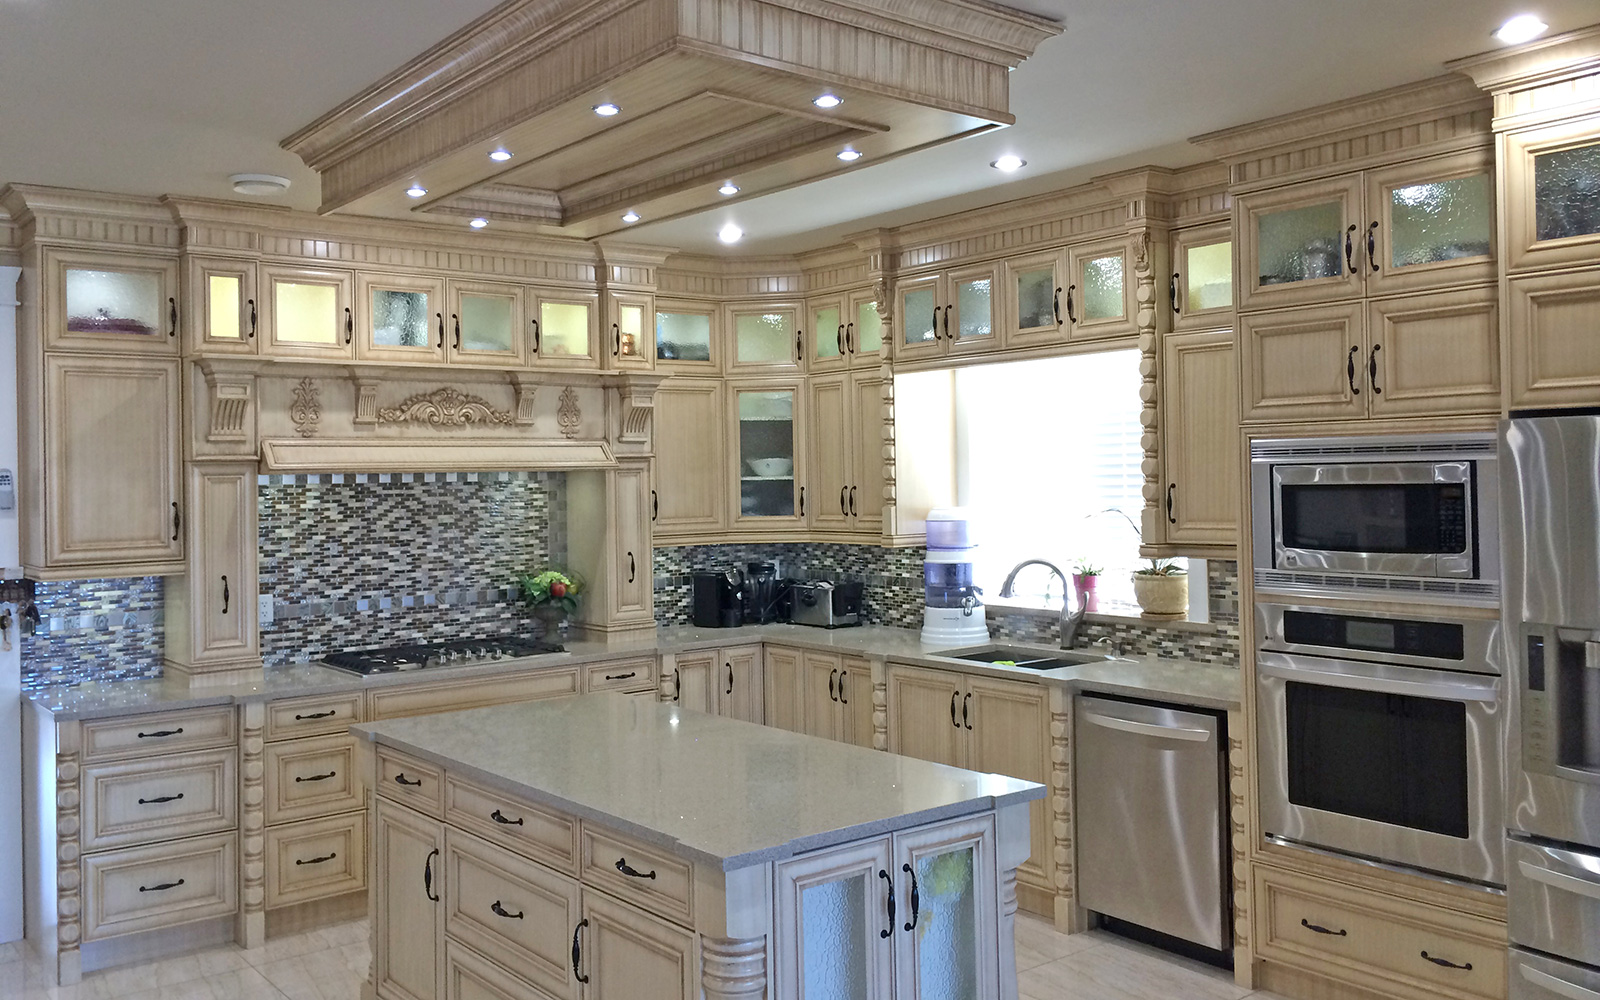 Calgary Custom Kitchen Cabinets Ltd. | Countertops